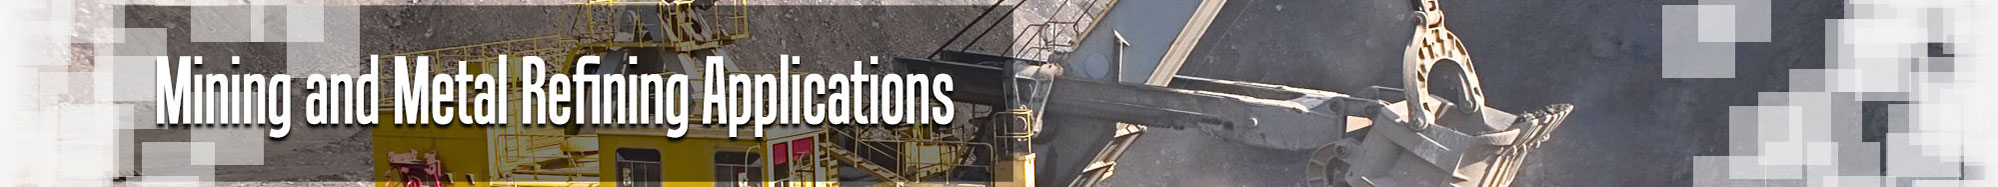 Mining and Metal Refining Applications